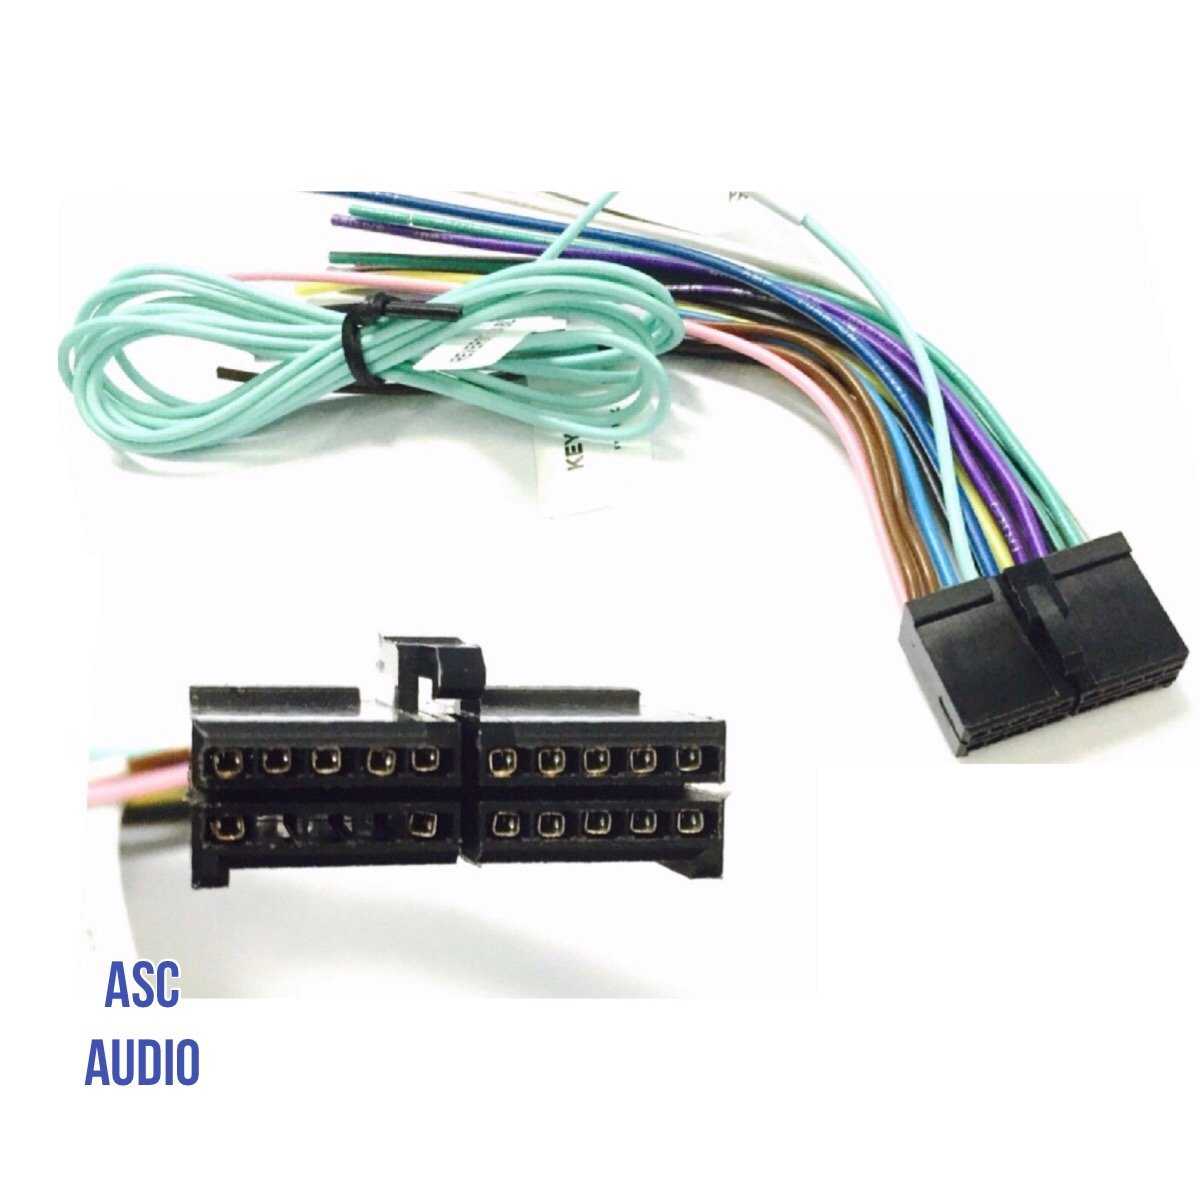 amazon com 16 pin car audio wire harness, stereo power plug, radio asc audio